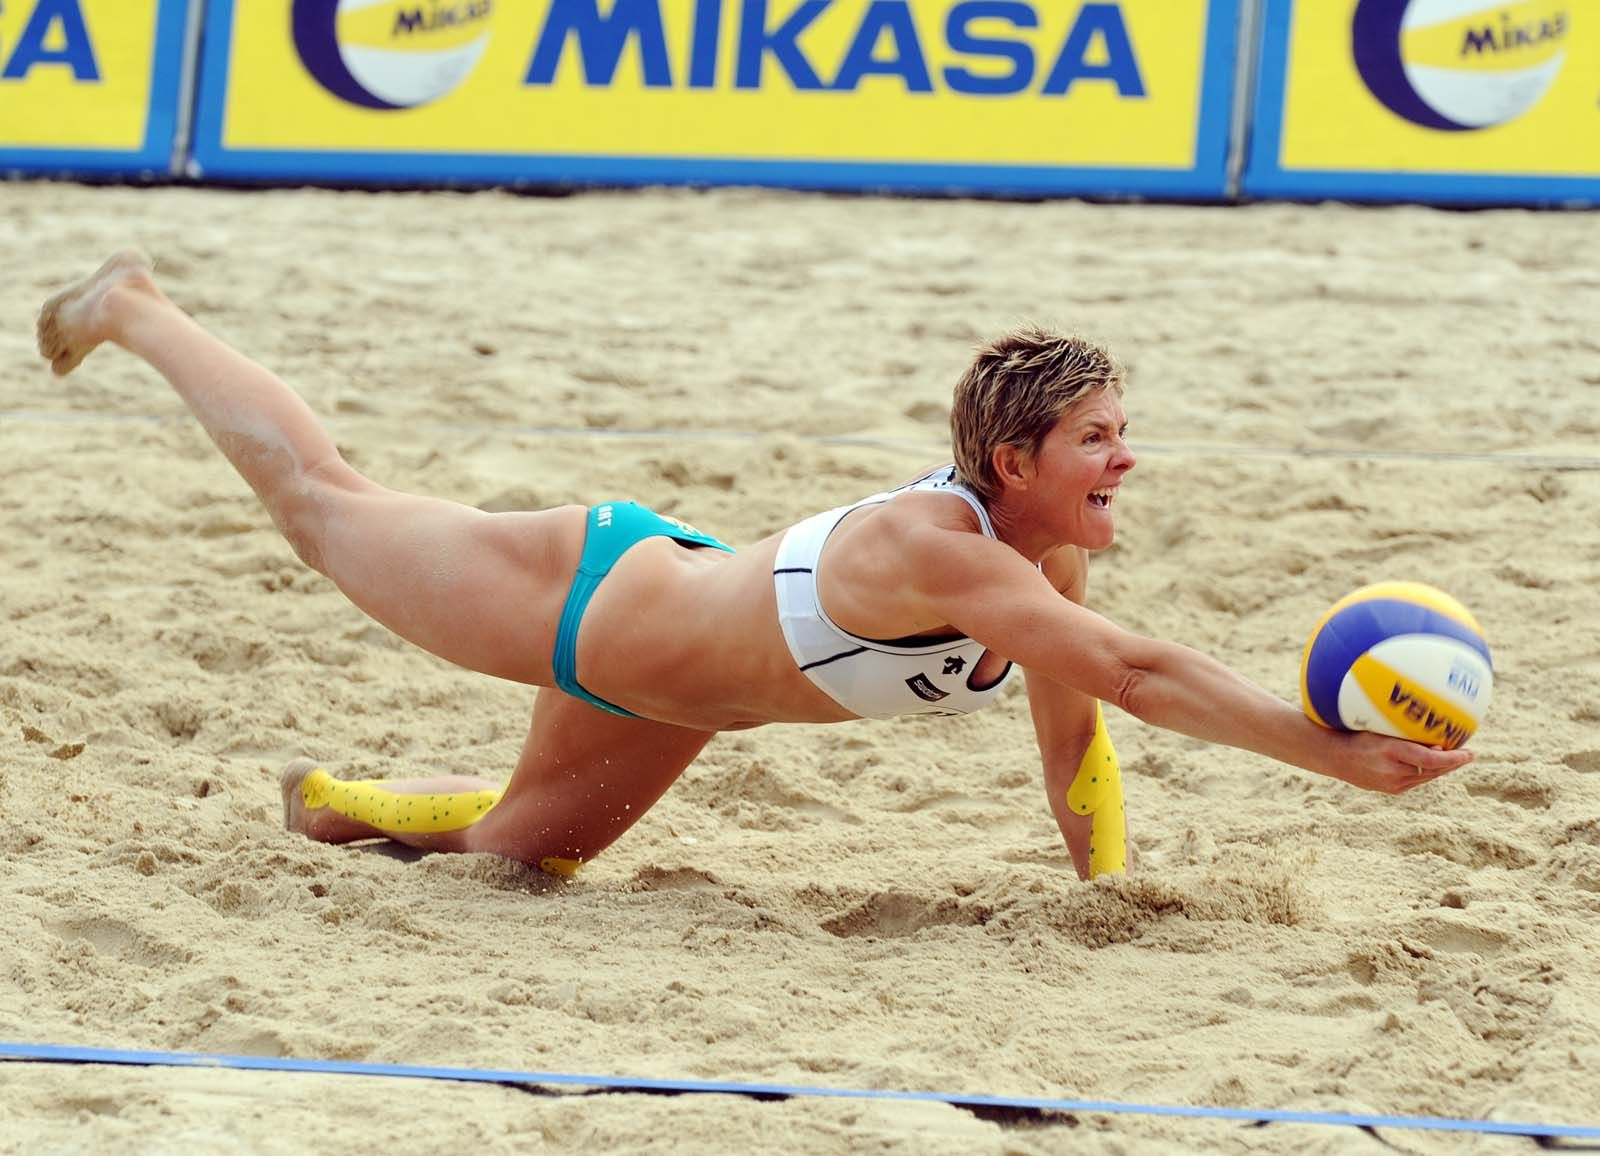 Australia S Natalie Cook Dives To Pickup The Ball At The Klagenfurt Tournament Cook And Tamsin Hinchley Were 5th Volleyball Photos Beach Volleyball Volleyball